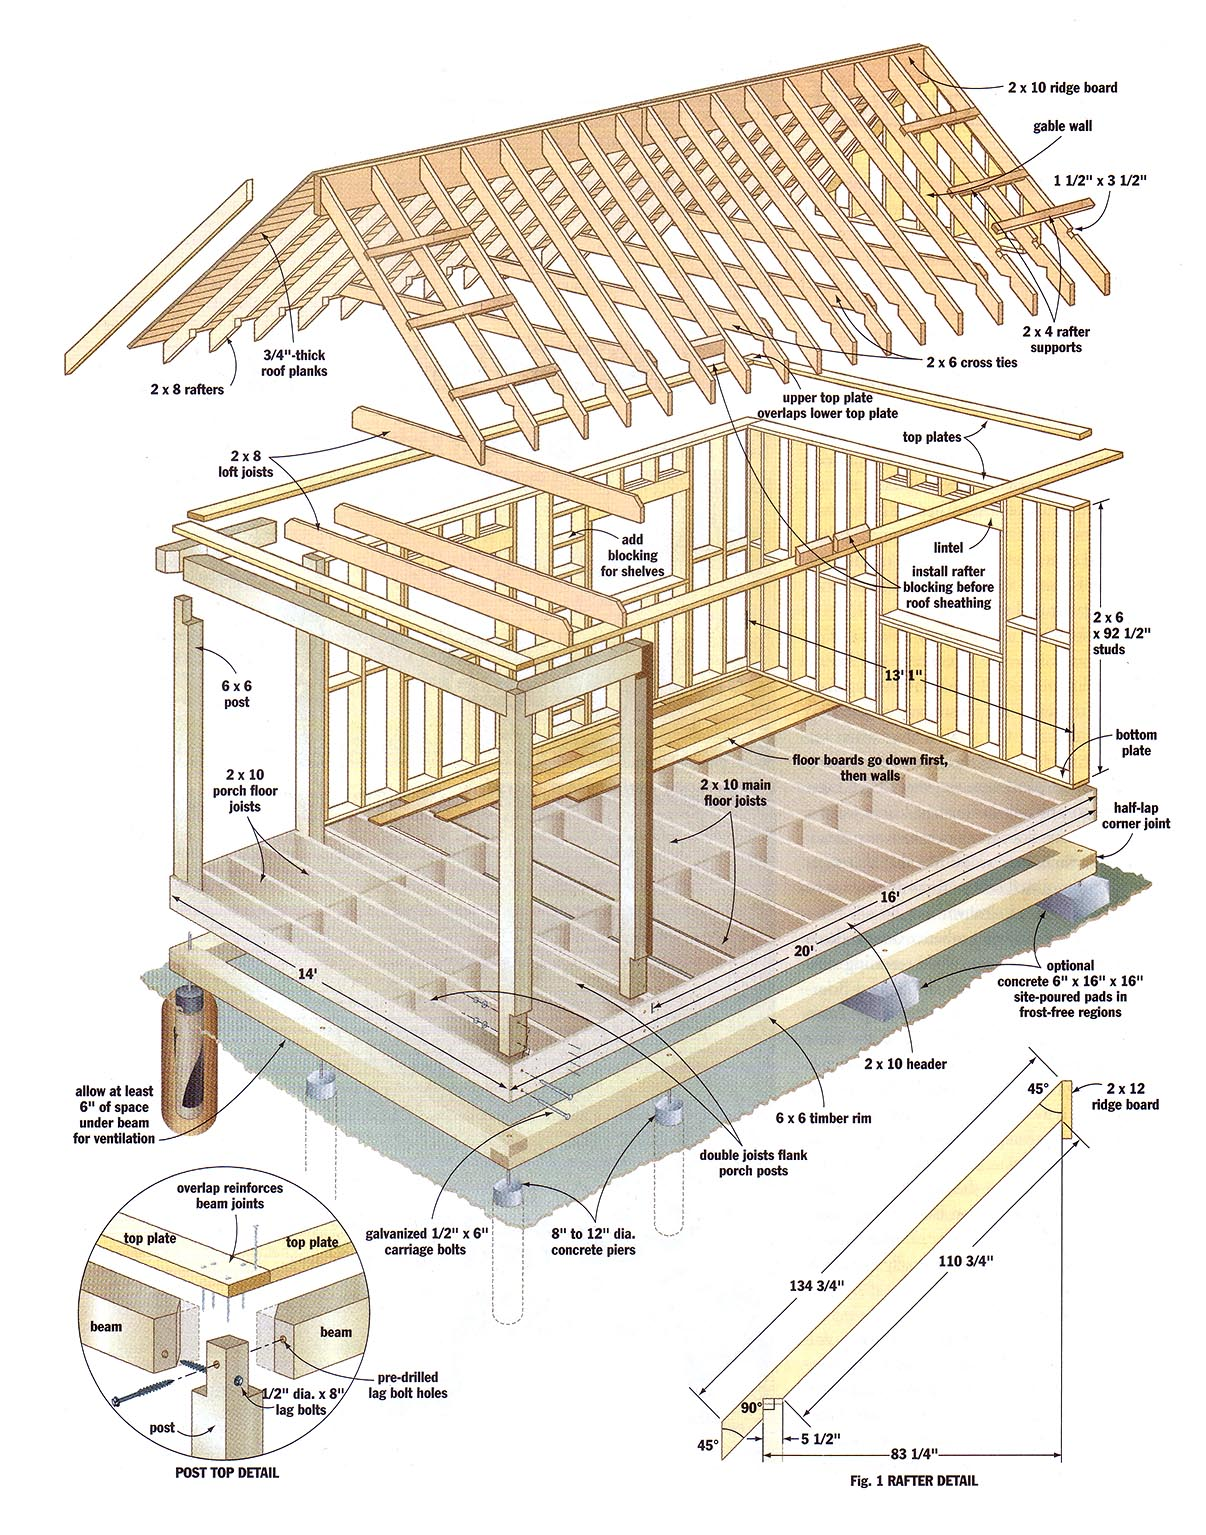 simple house diagram 1988 honda accord fuel pump wiring build this cabin for under 5 000 wny handyman